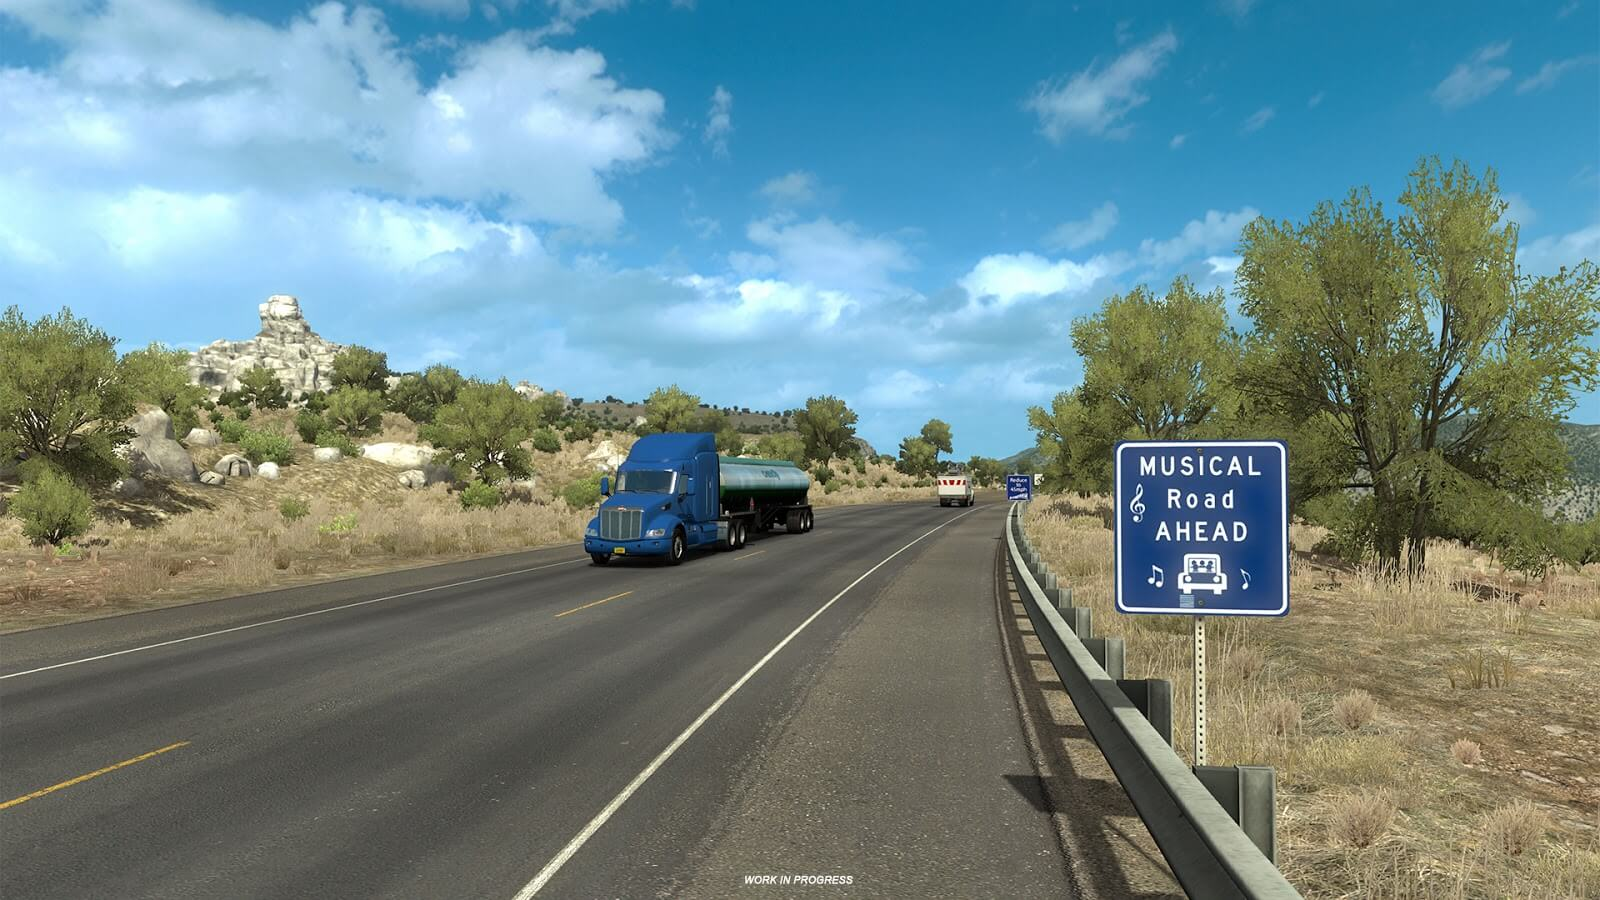 American Truck Simulator: New Mexico - музыкальная дорога